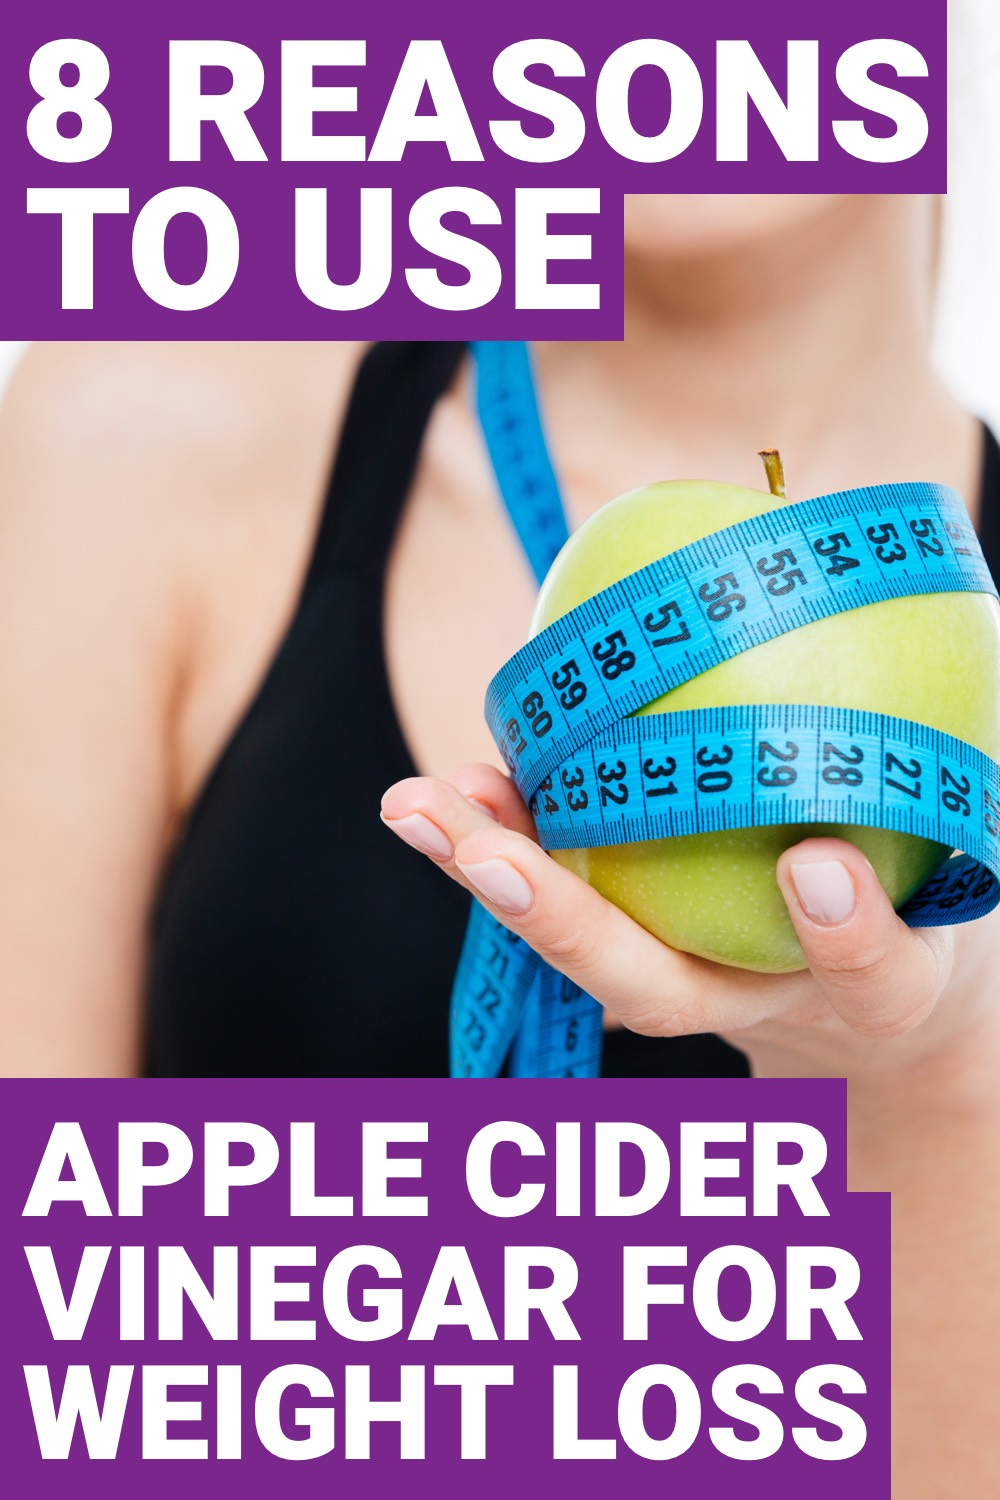 Drinking apple cider vinegar on a daily basis is going to help improve your overall health. Mainly, you'll start experiencing some weight loss. Here are 8 reasons why you should use apple cider vinegar for weight loss.